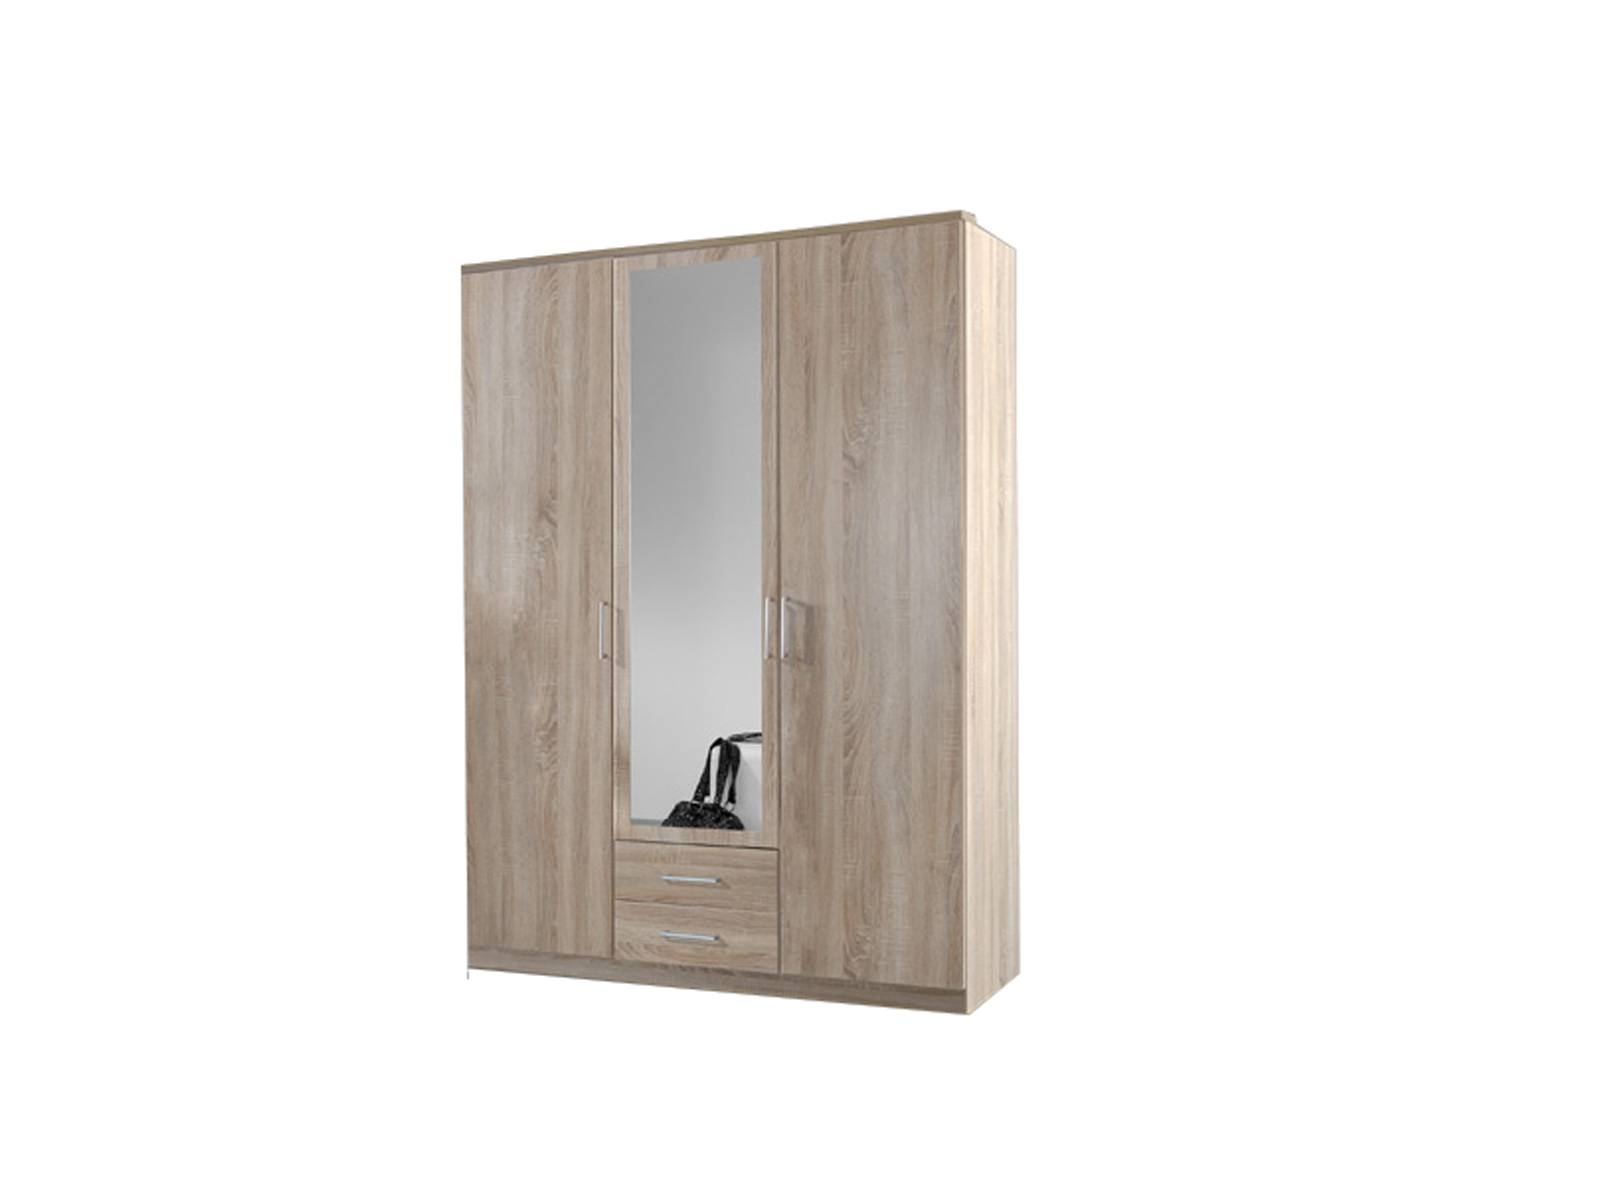 Cheap Wardrobes | Bedroom Furniture For Sale | Double Wardrobe With Regard To Cheap Double Wardrobes (View 7 of 15)